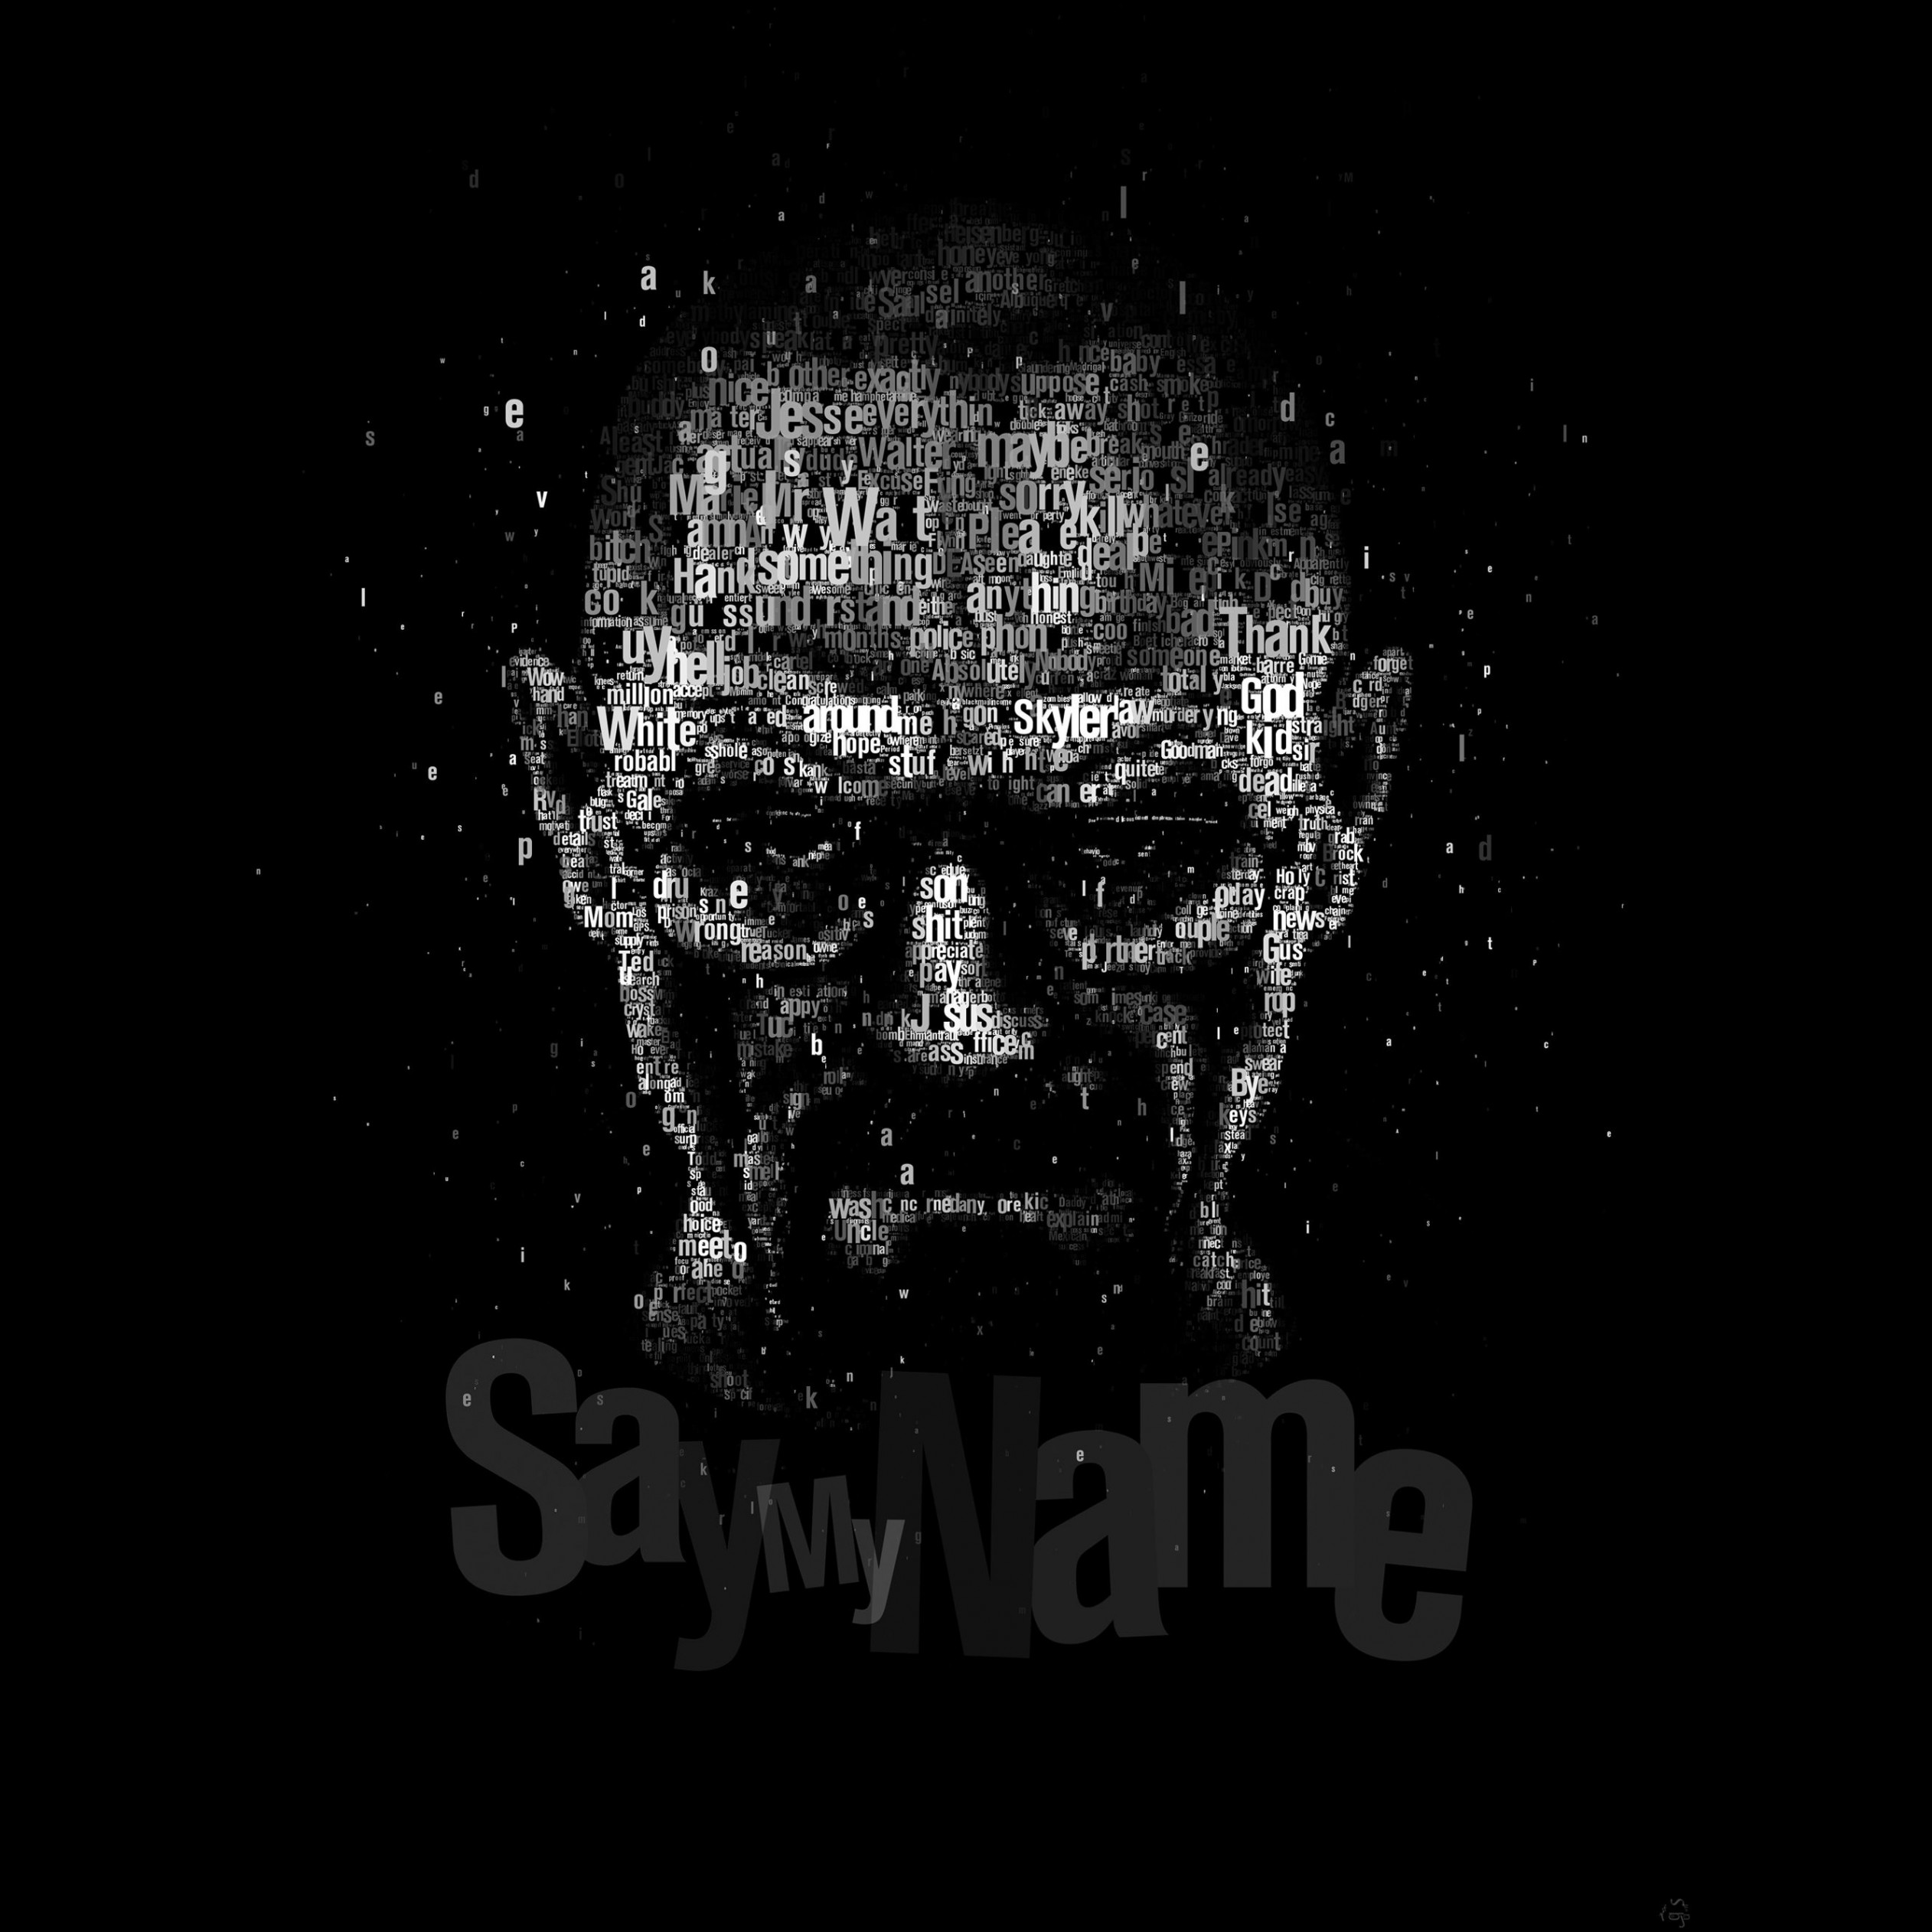 Say My Name - Typography Art Wallpaper for Apple iPad Air